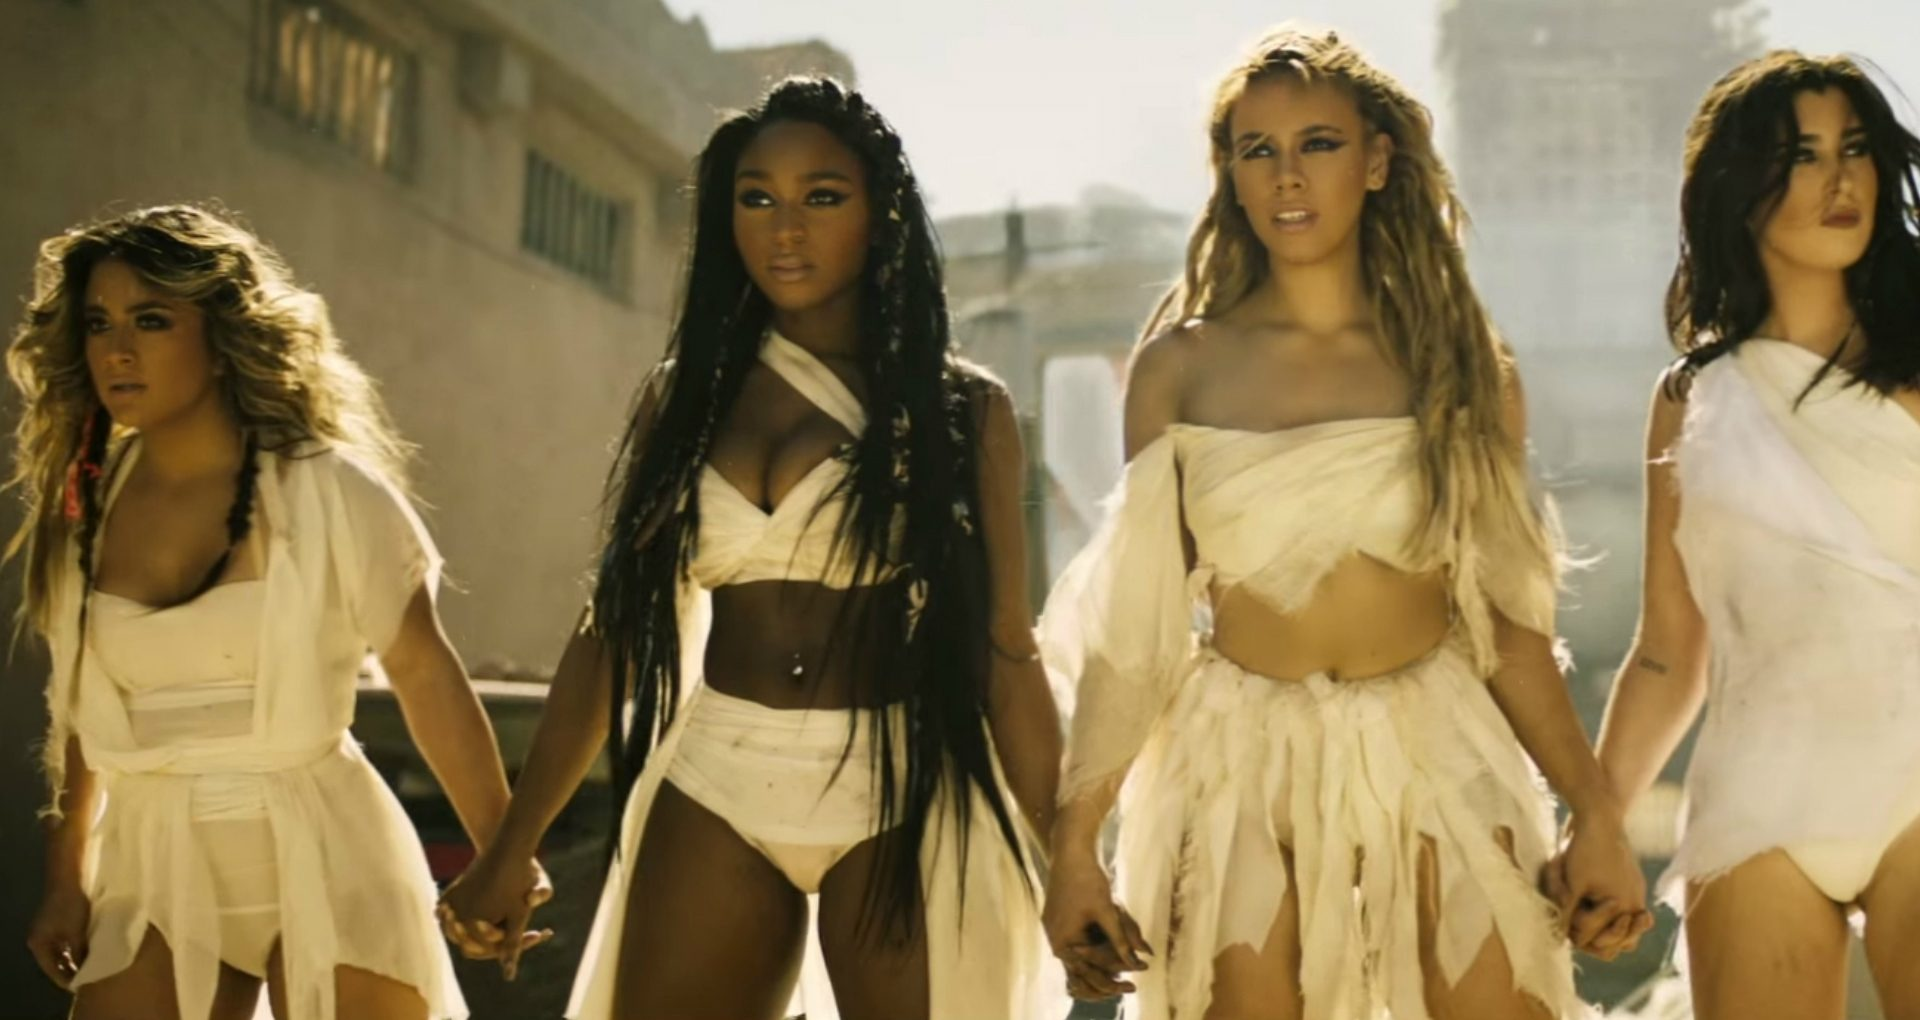 Fifth Harmony in That's My Girl video